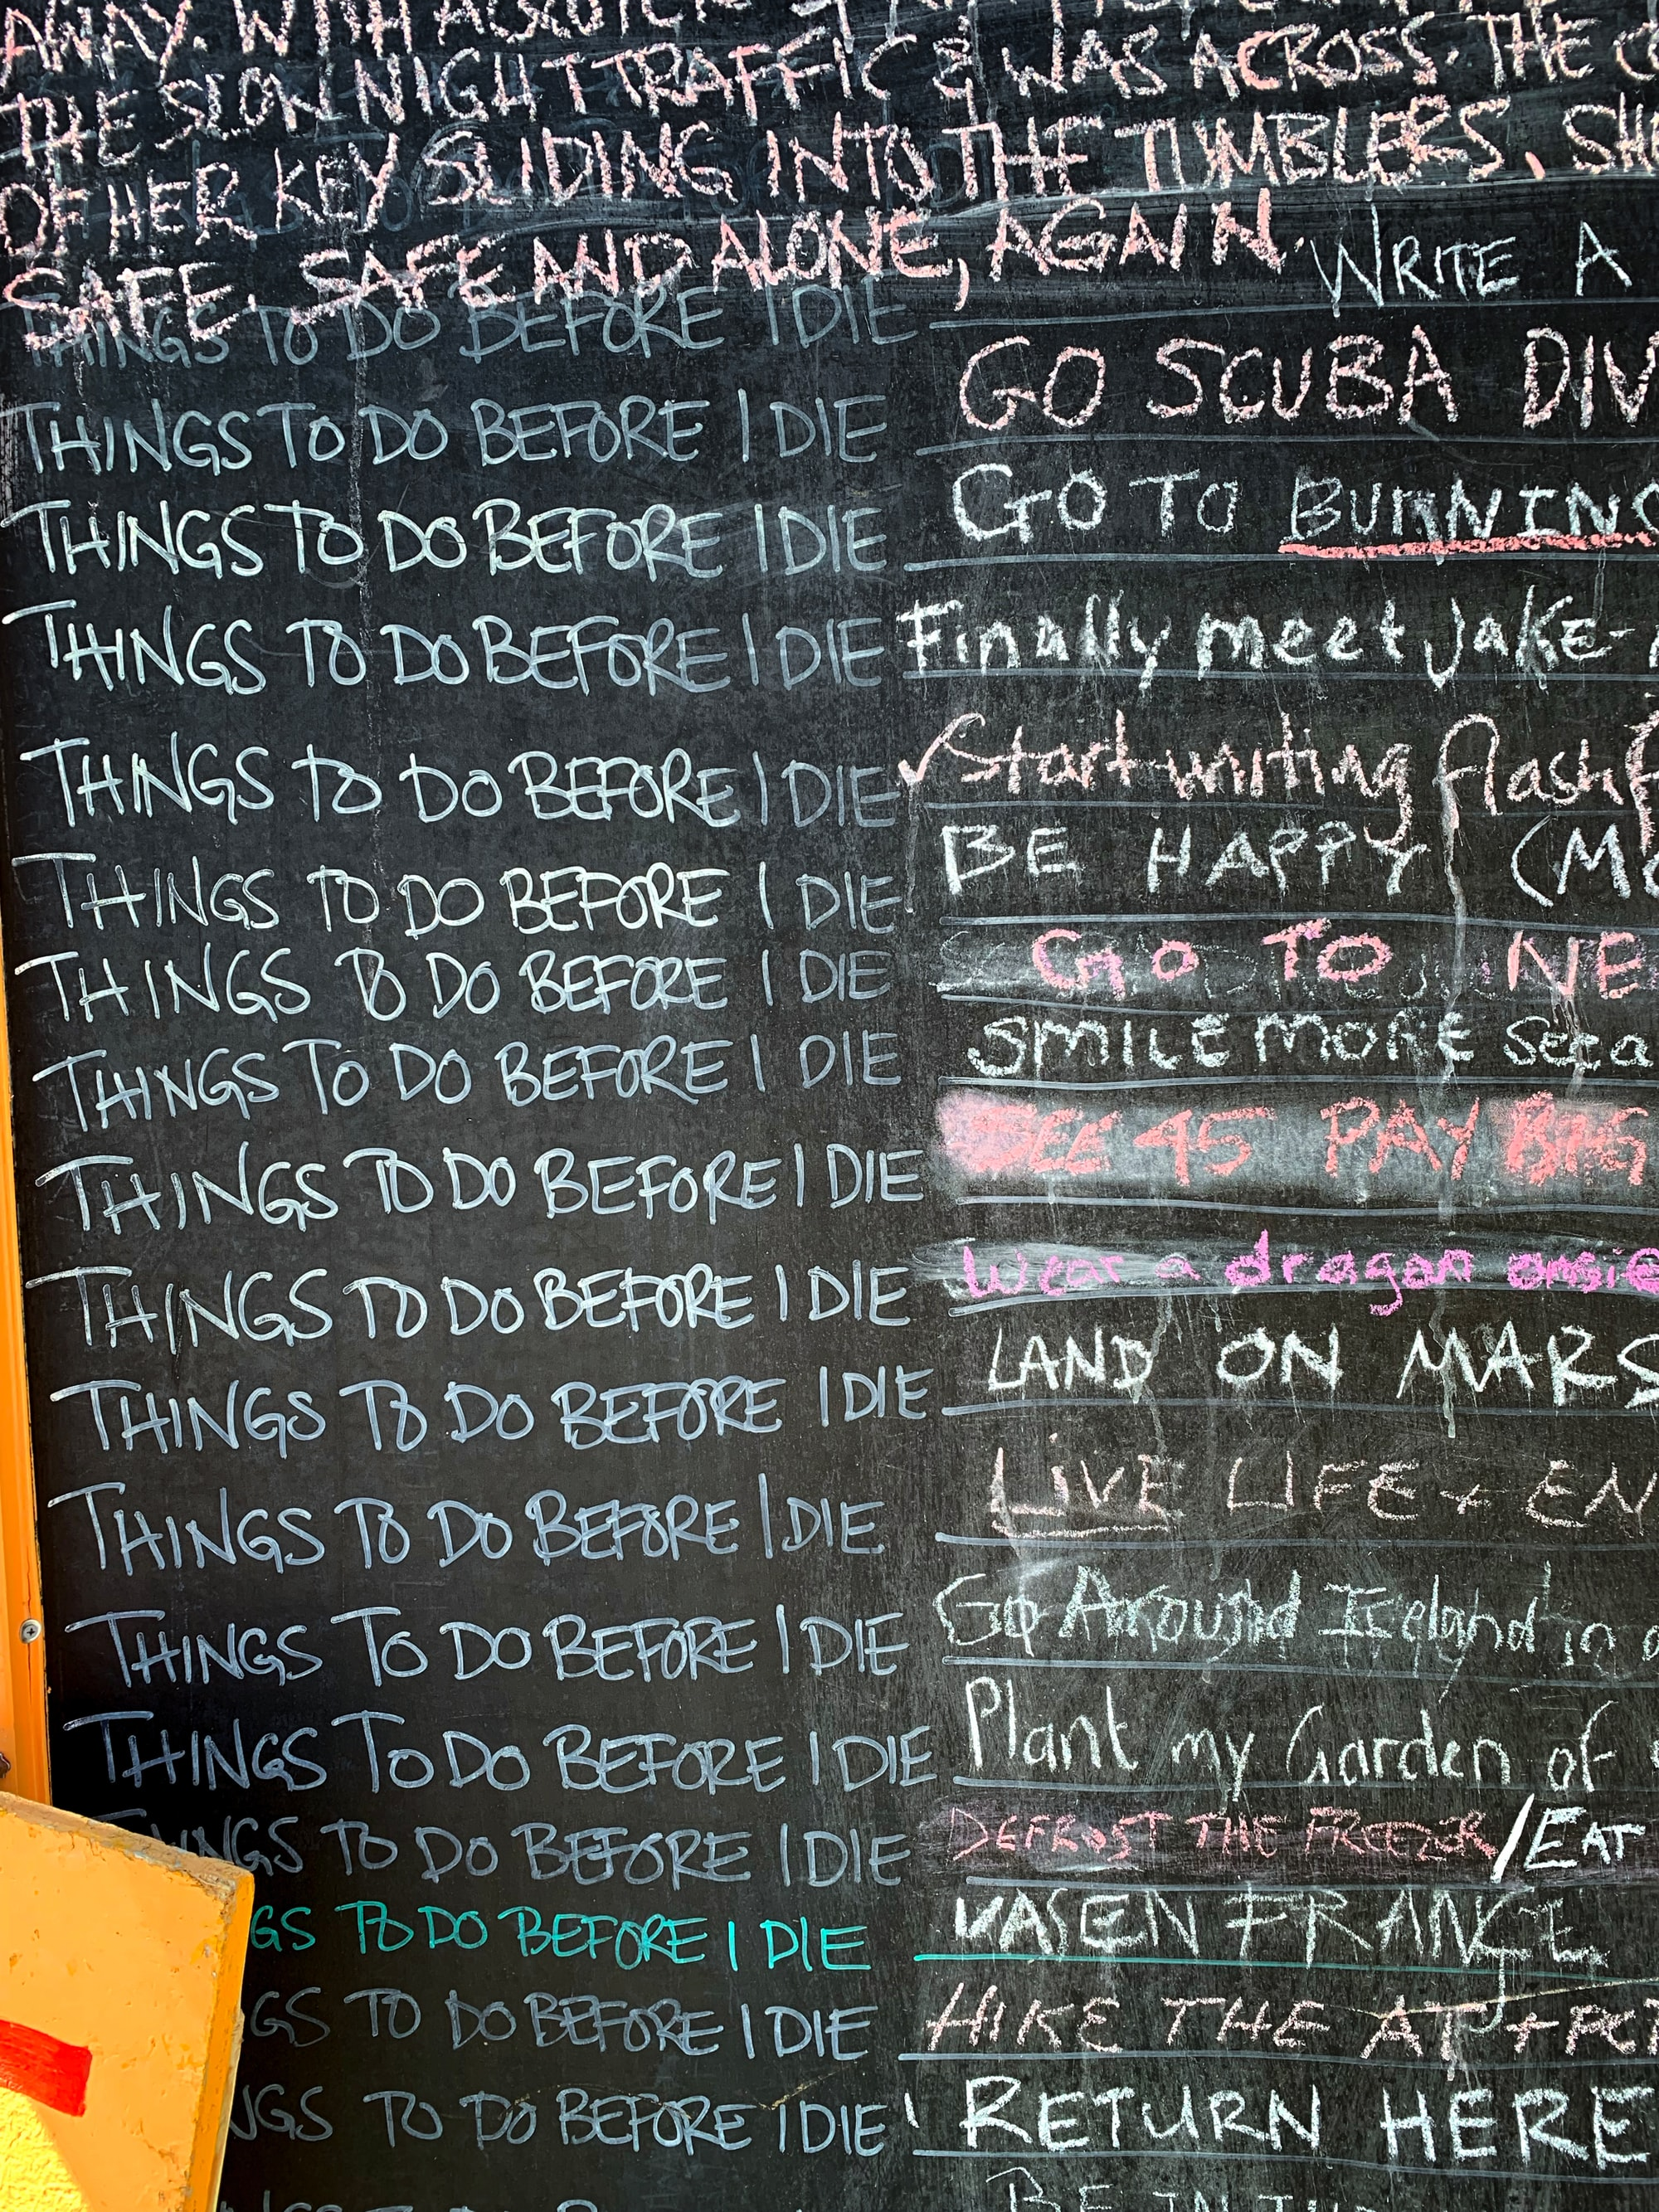 Things to do before I die, sign in Colorado